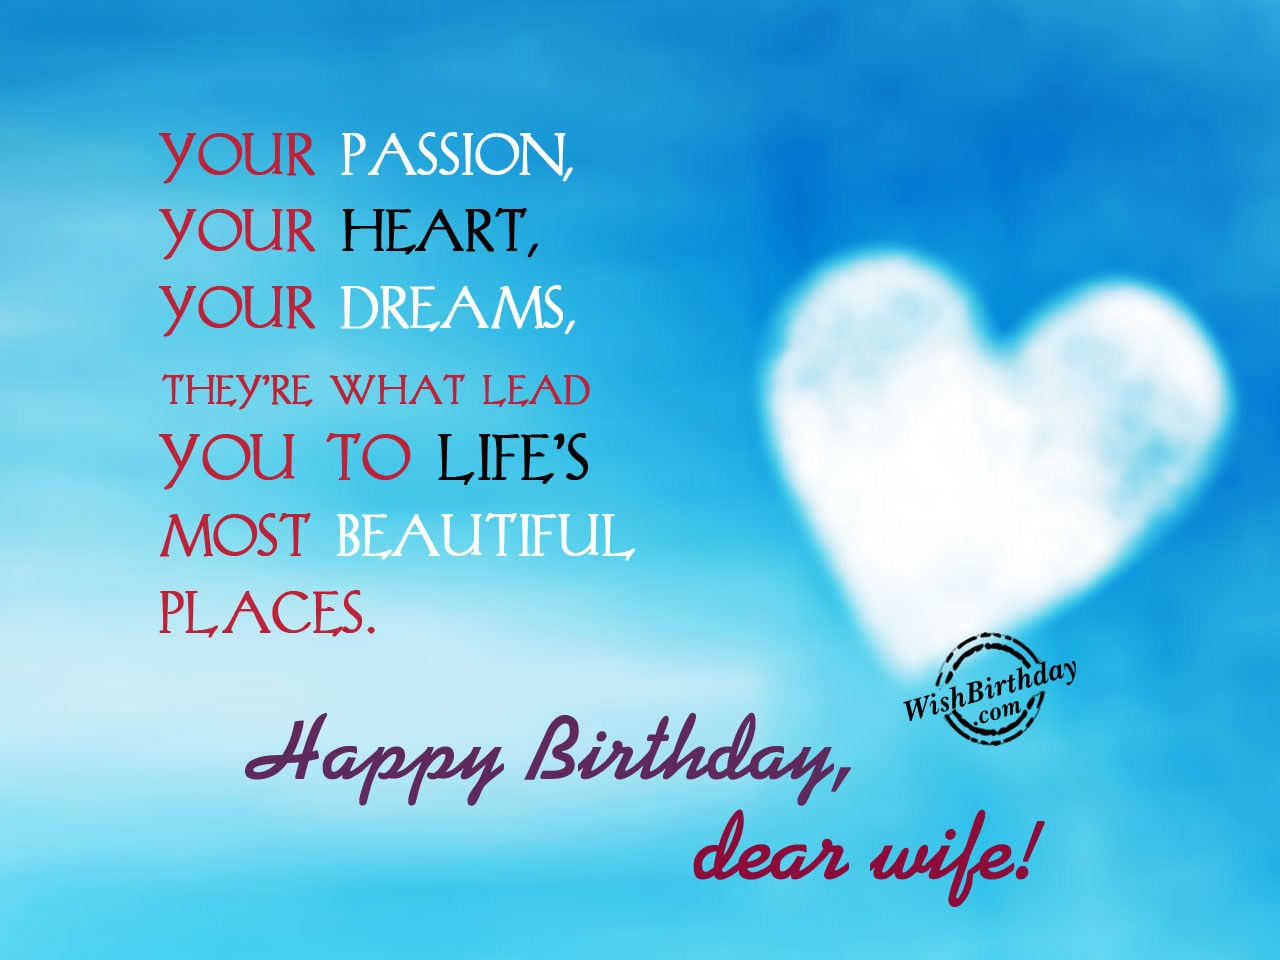 birthday wishes greeting cards for wife ; Your-passion-your-heart